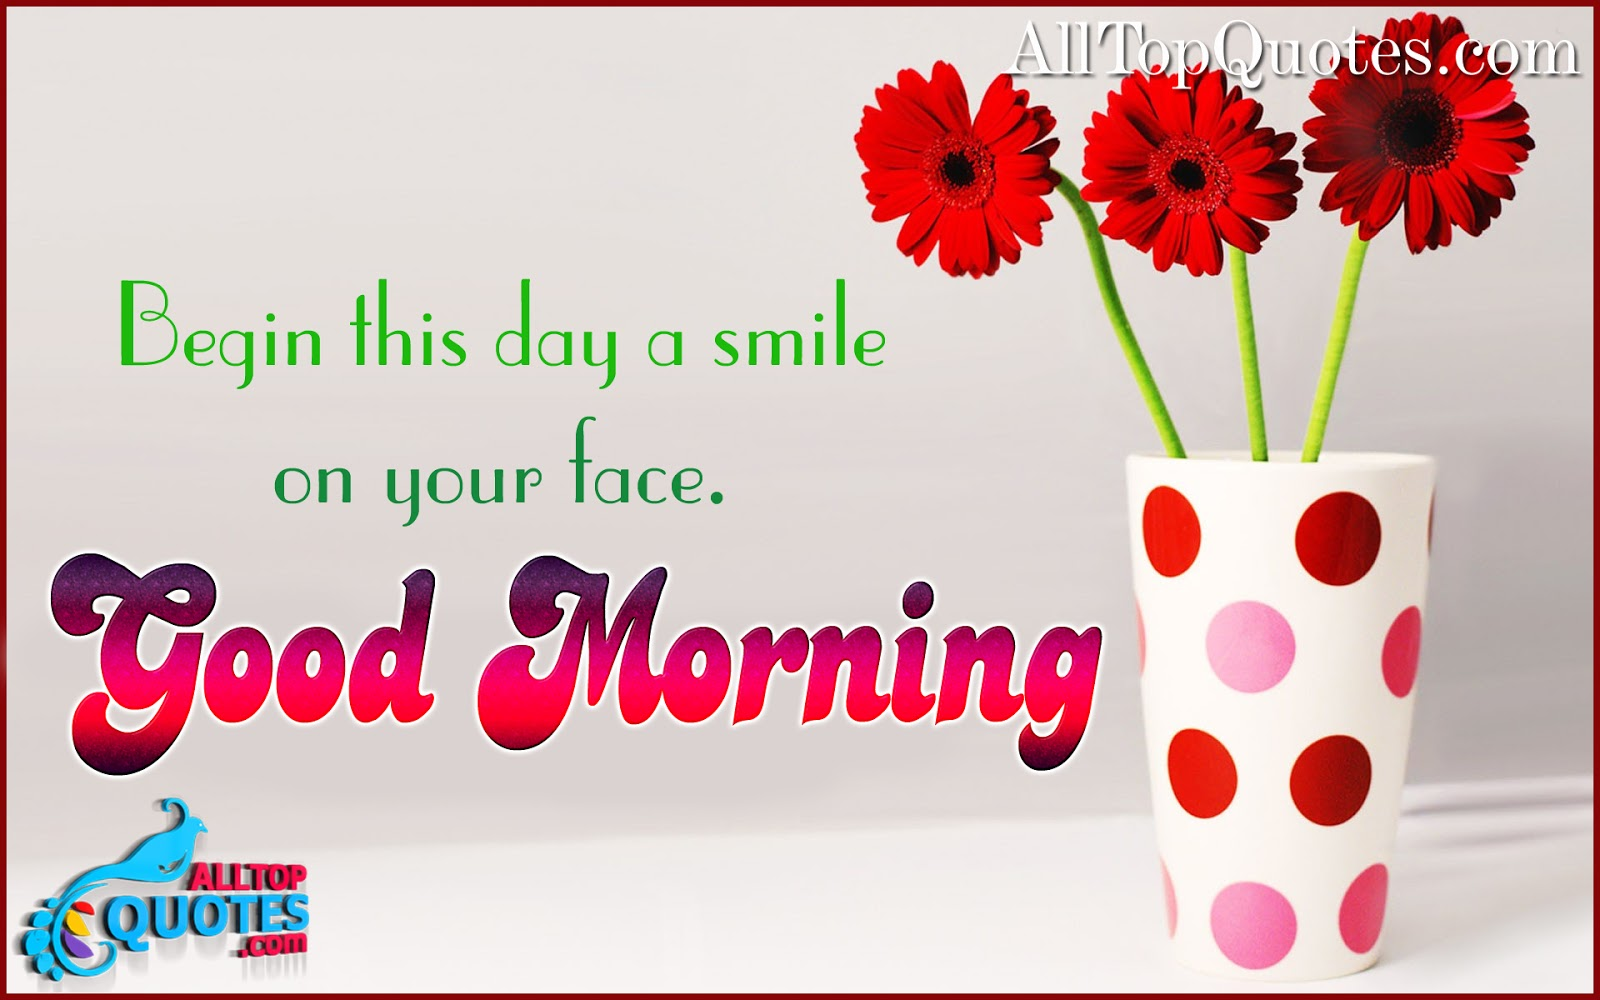 Short Quotations Good Morning Short Quotations In English  All Top Quotes  Telugu